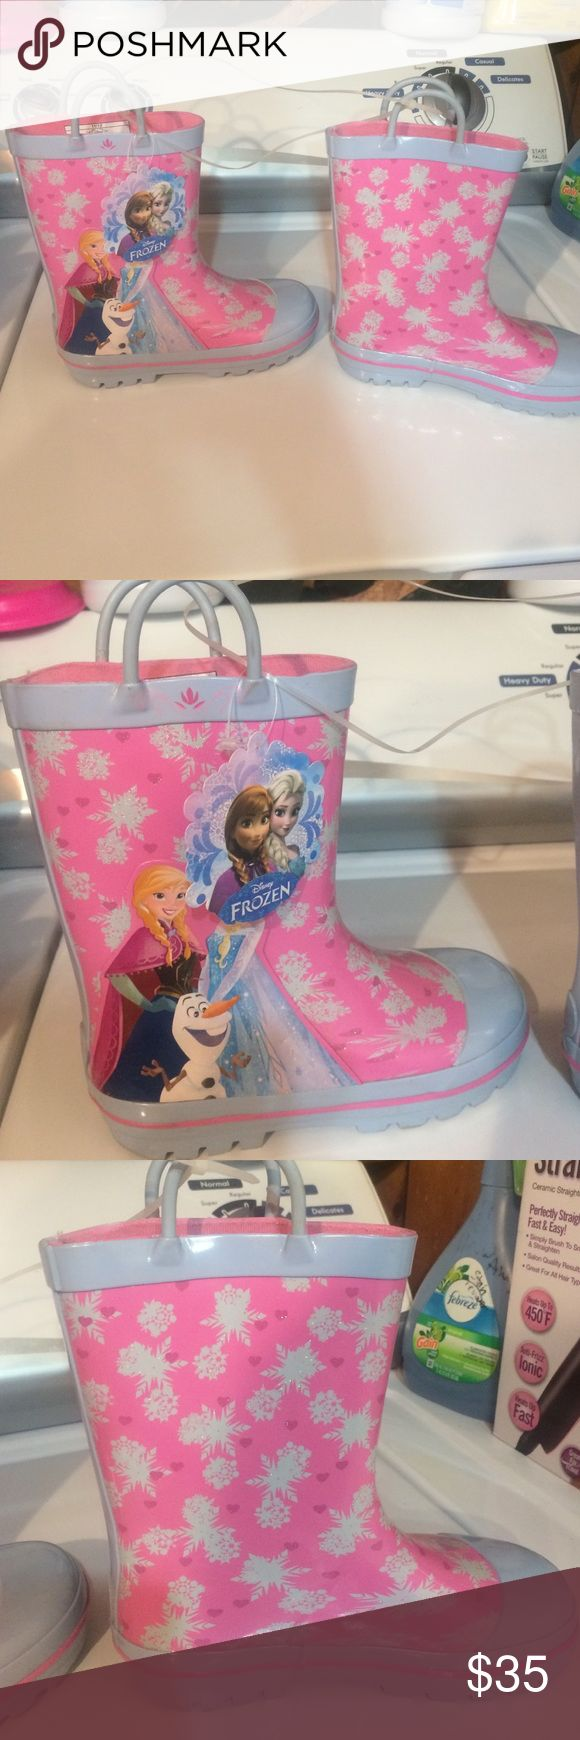 BNWT FROZEN RAIN BOOTS offers welcome 💓 Still attached never tried on never wore. My daughter is scared they won't be comfortable lol they're sparkly pink & gray with princess Anna Queen Elsa and Olaf showing on the outside of this cute stylish boot Disney Shoes Rain & Snow Boots